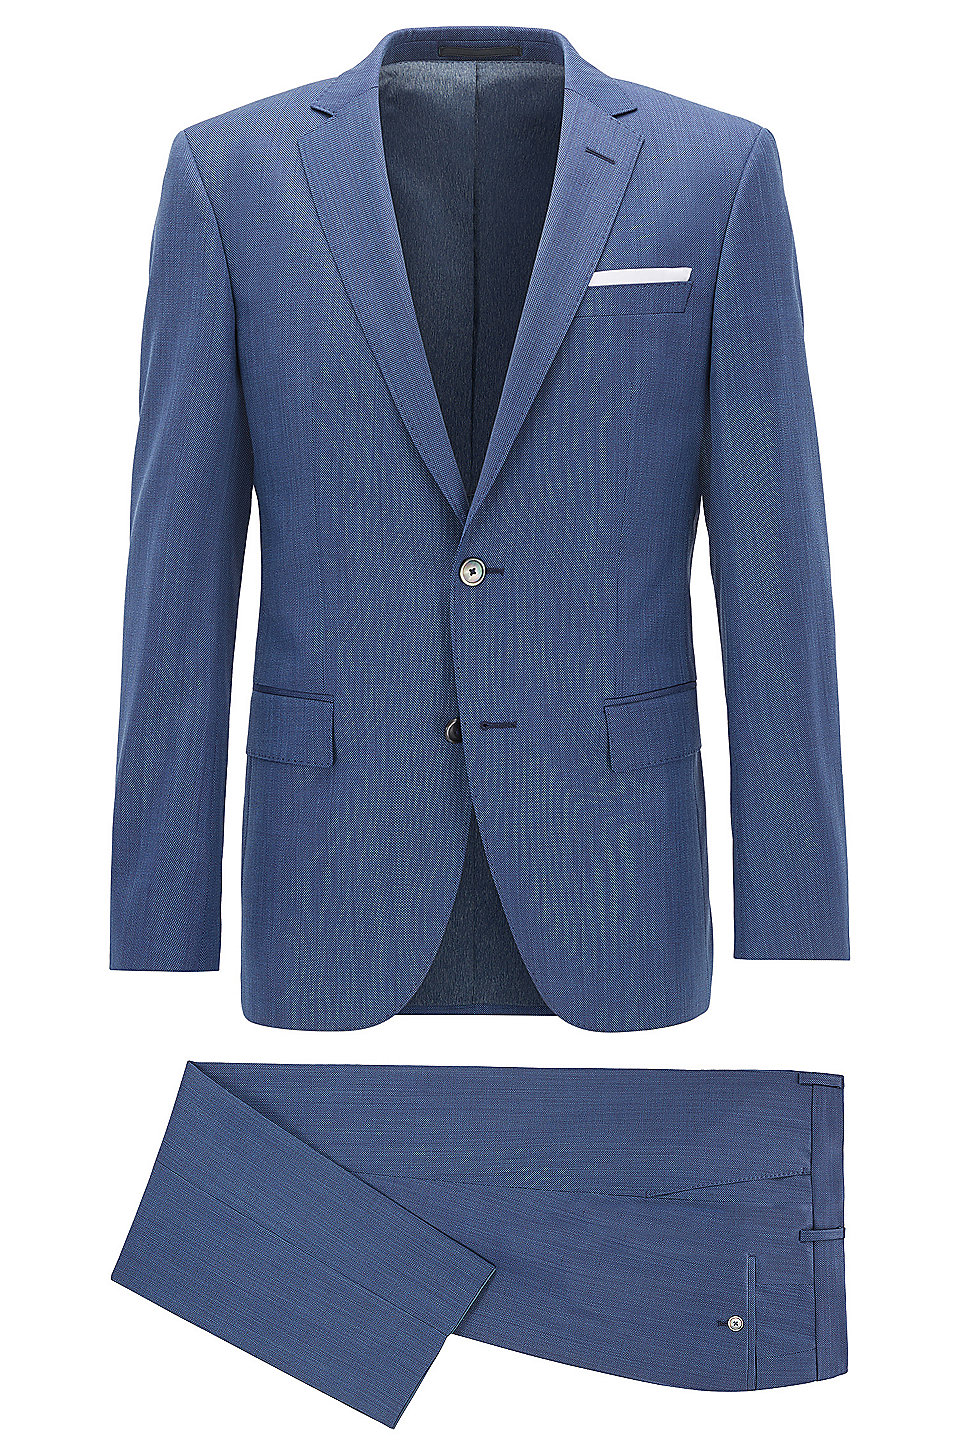 BOSS - Nailhead Virgin Wool Suit, Slim Fit | Hutson/Gander